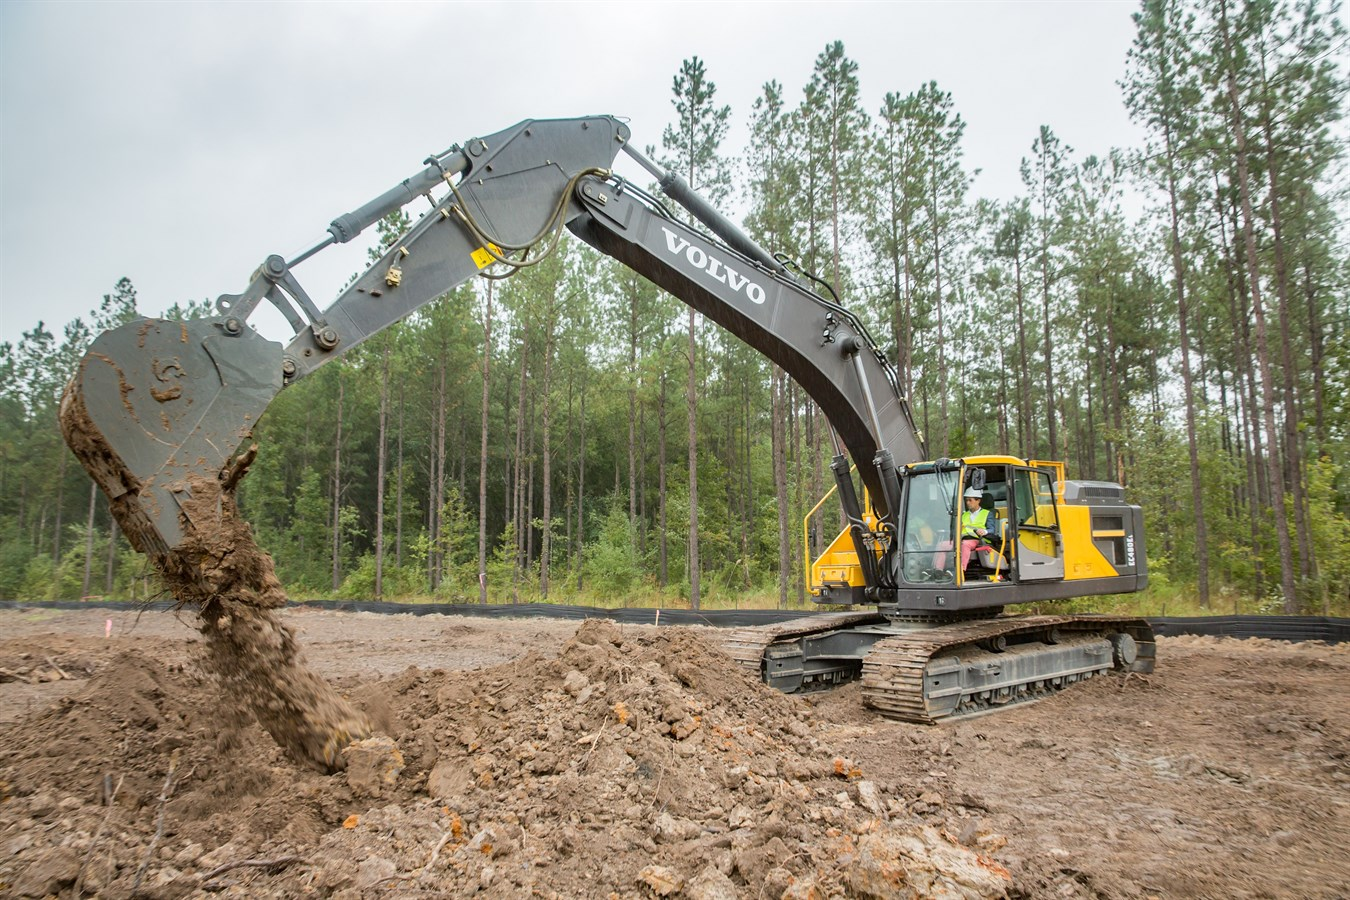 Volvo North America Volvo Cars Breaks Ground On First American Factory Volvo Car Usa